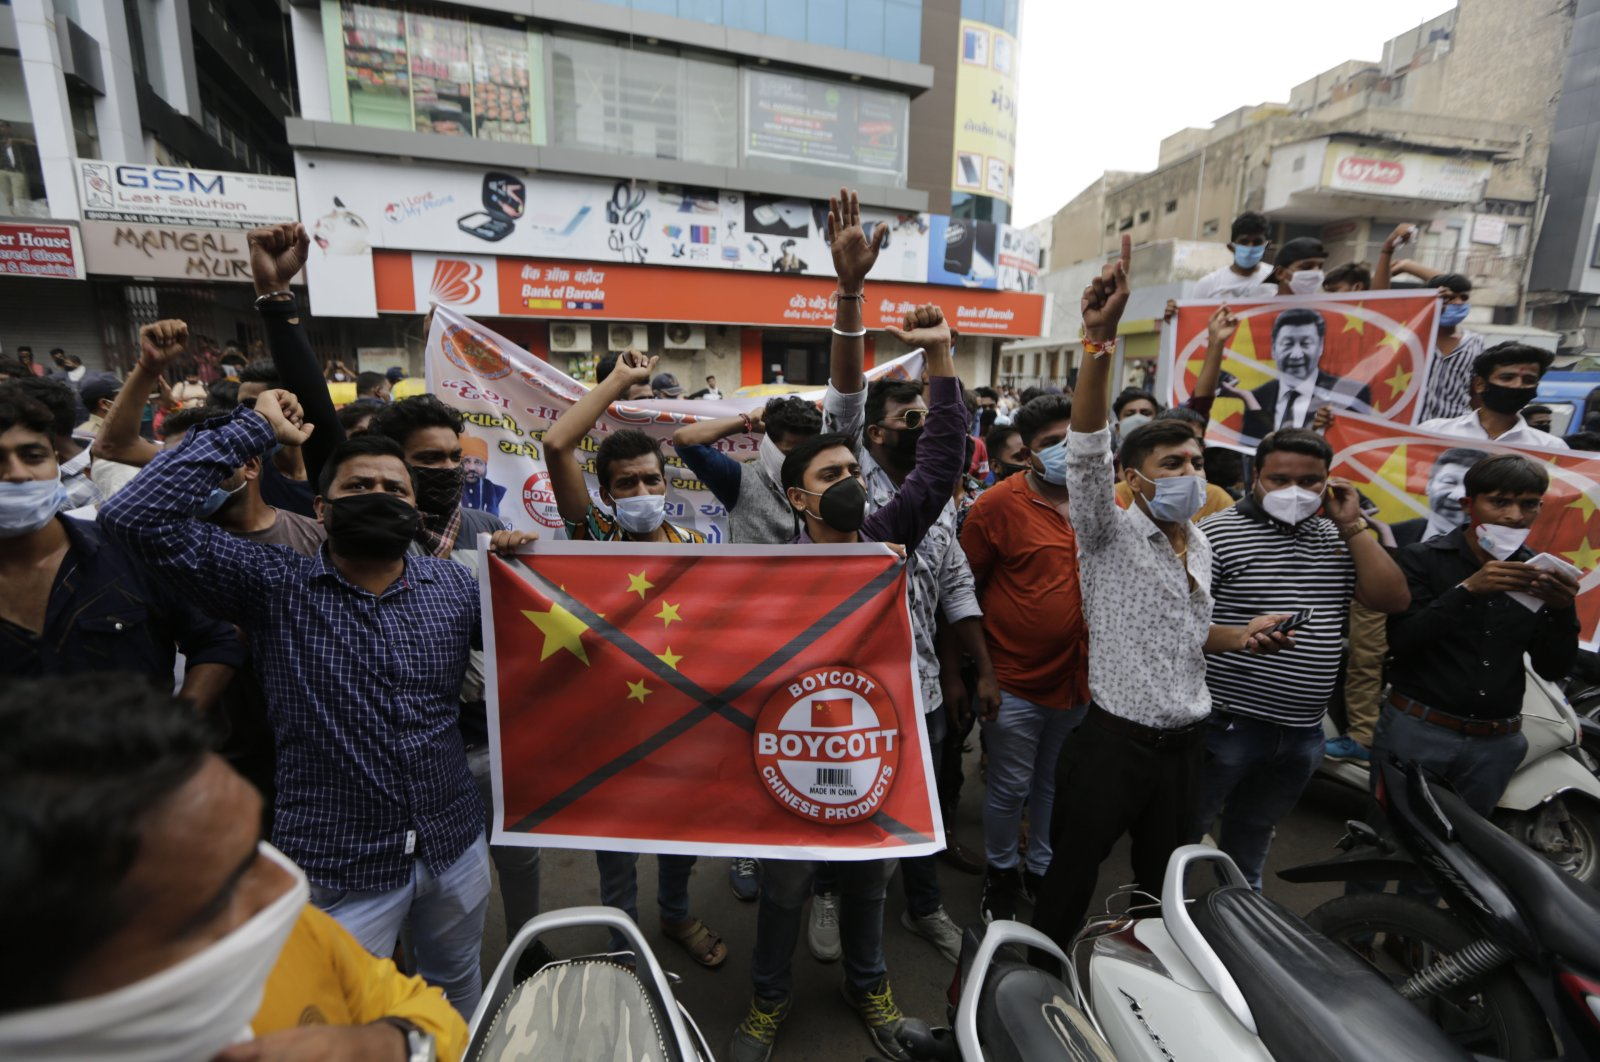 People shout slogans during a protest against China, Ahmedabad, India, June 24, 2020. (AP Photo)